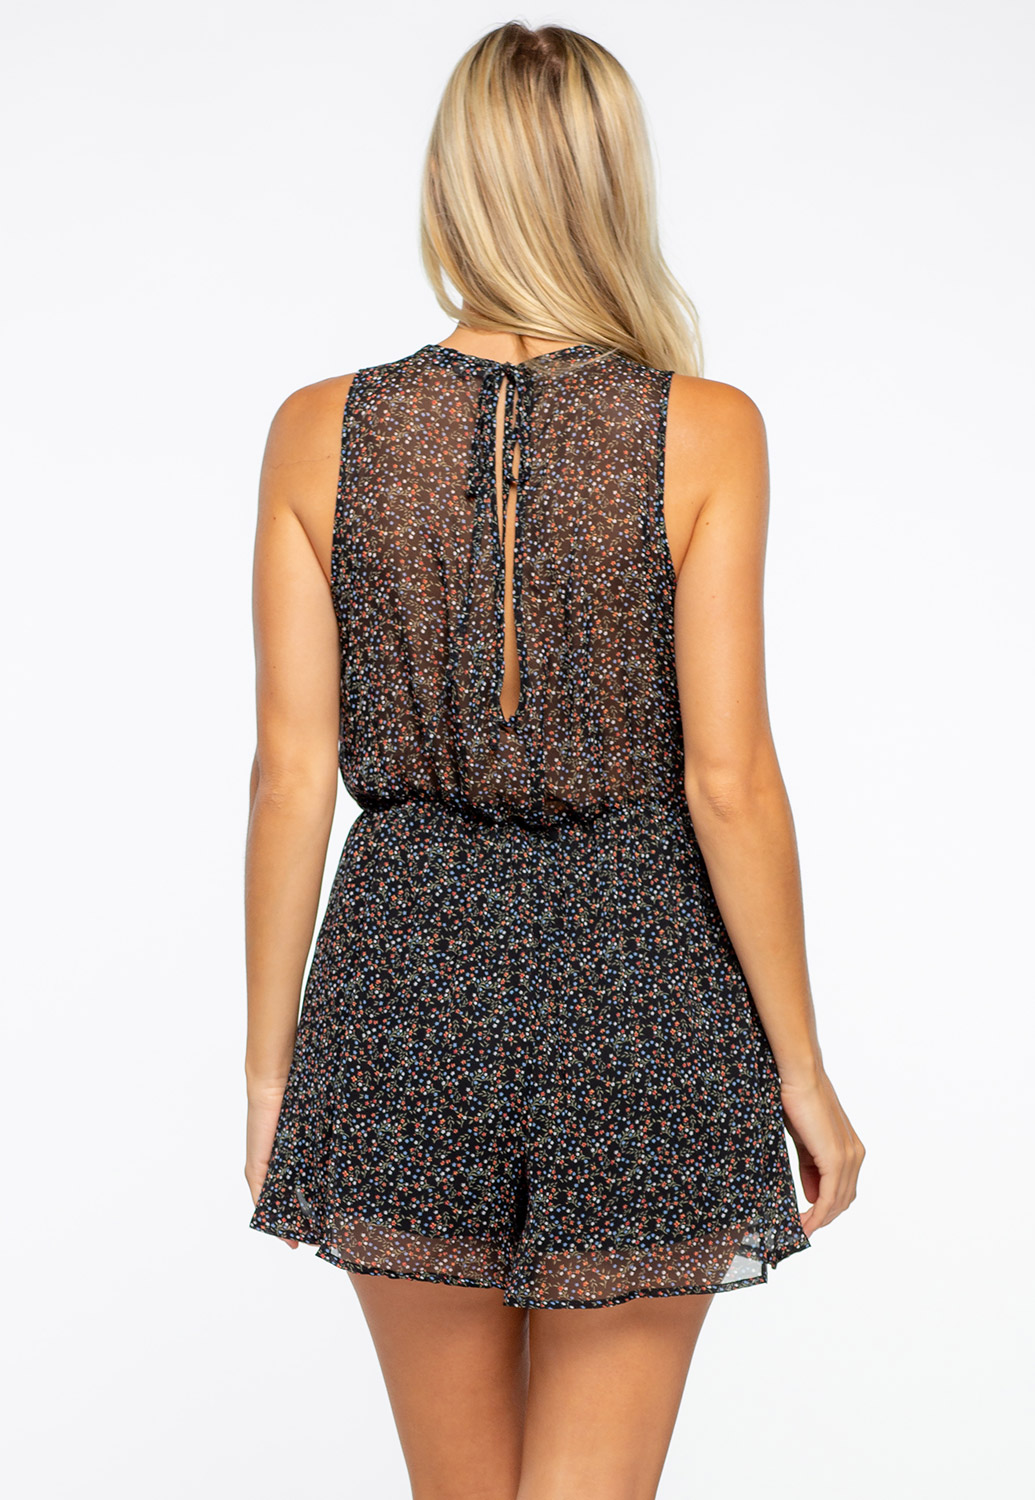 Deep V-Neck Line Floral Printed Romper With Back Tie